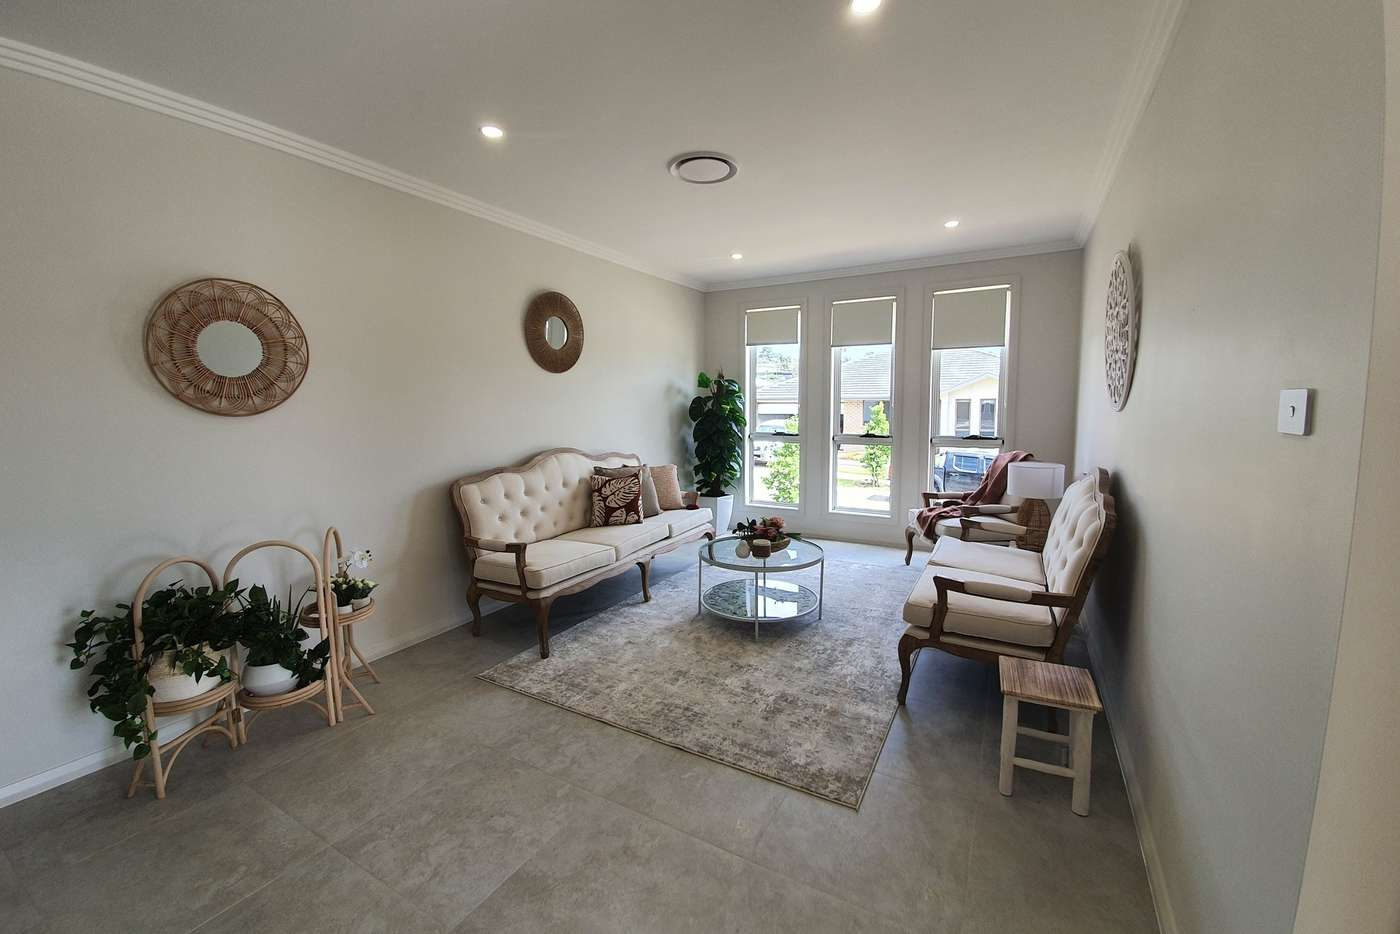 Main view of Homely house listing, 1 Dillies Lane, Tahmoor NSW 2573